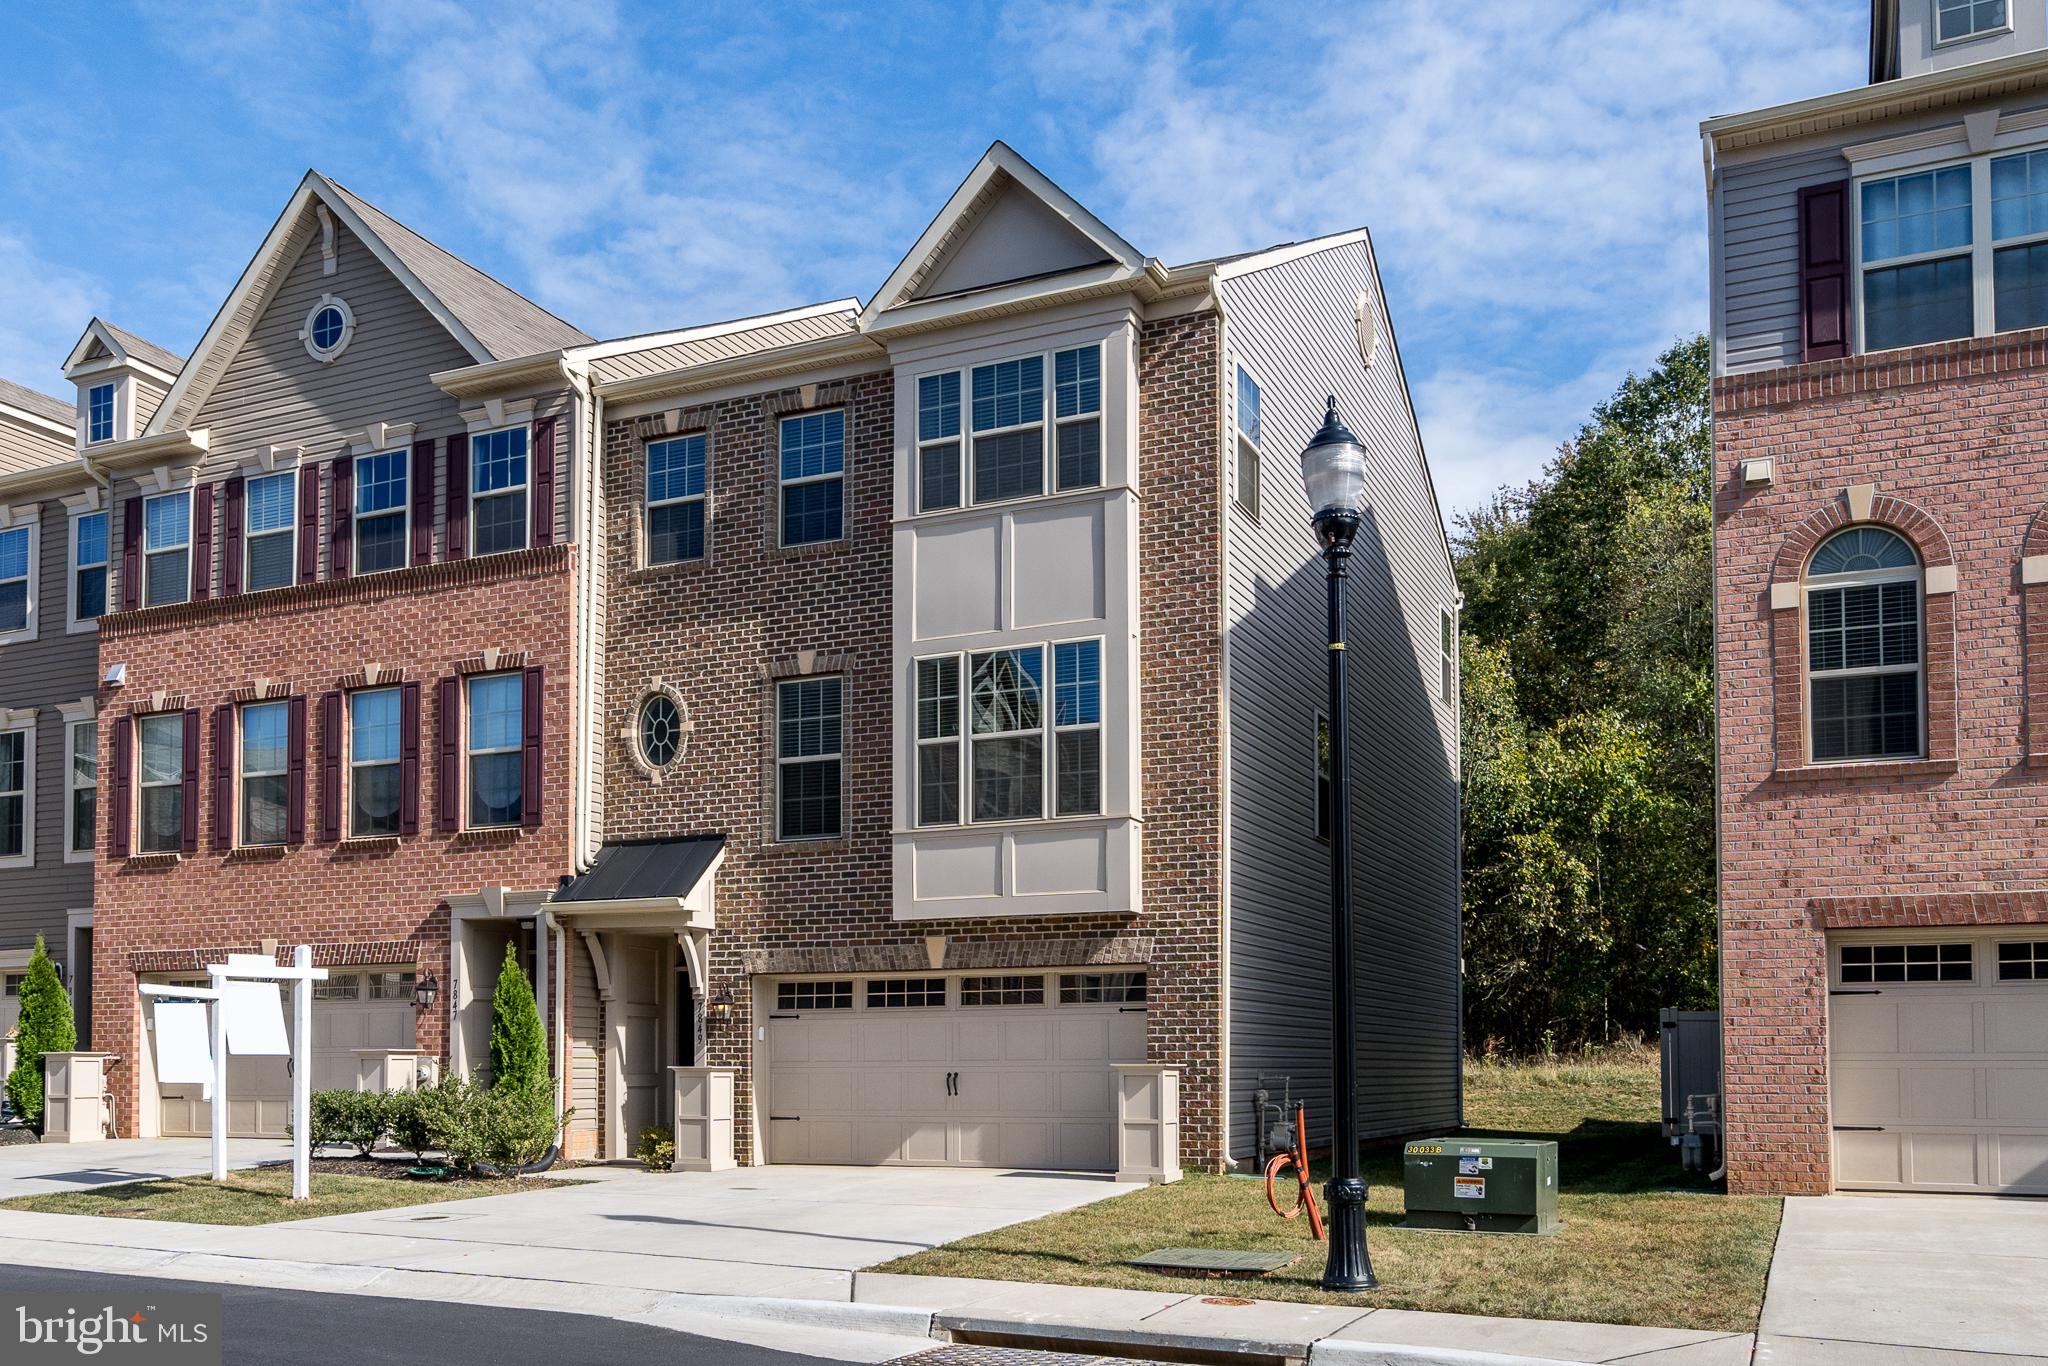 7849 RAPPAPORT DRIVE, JESSUP, MD 20794